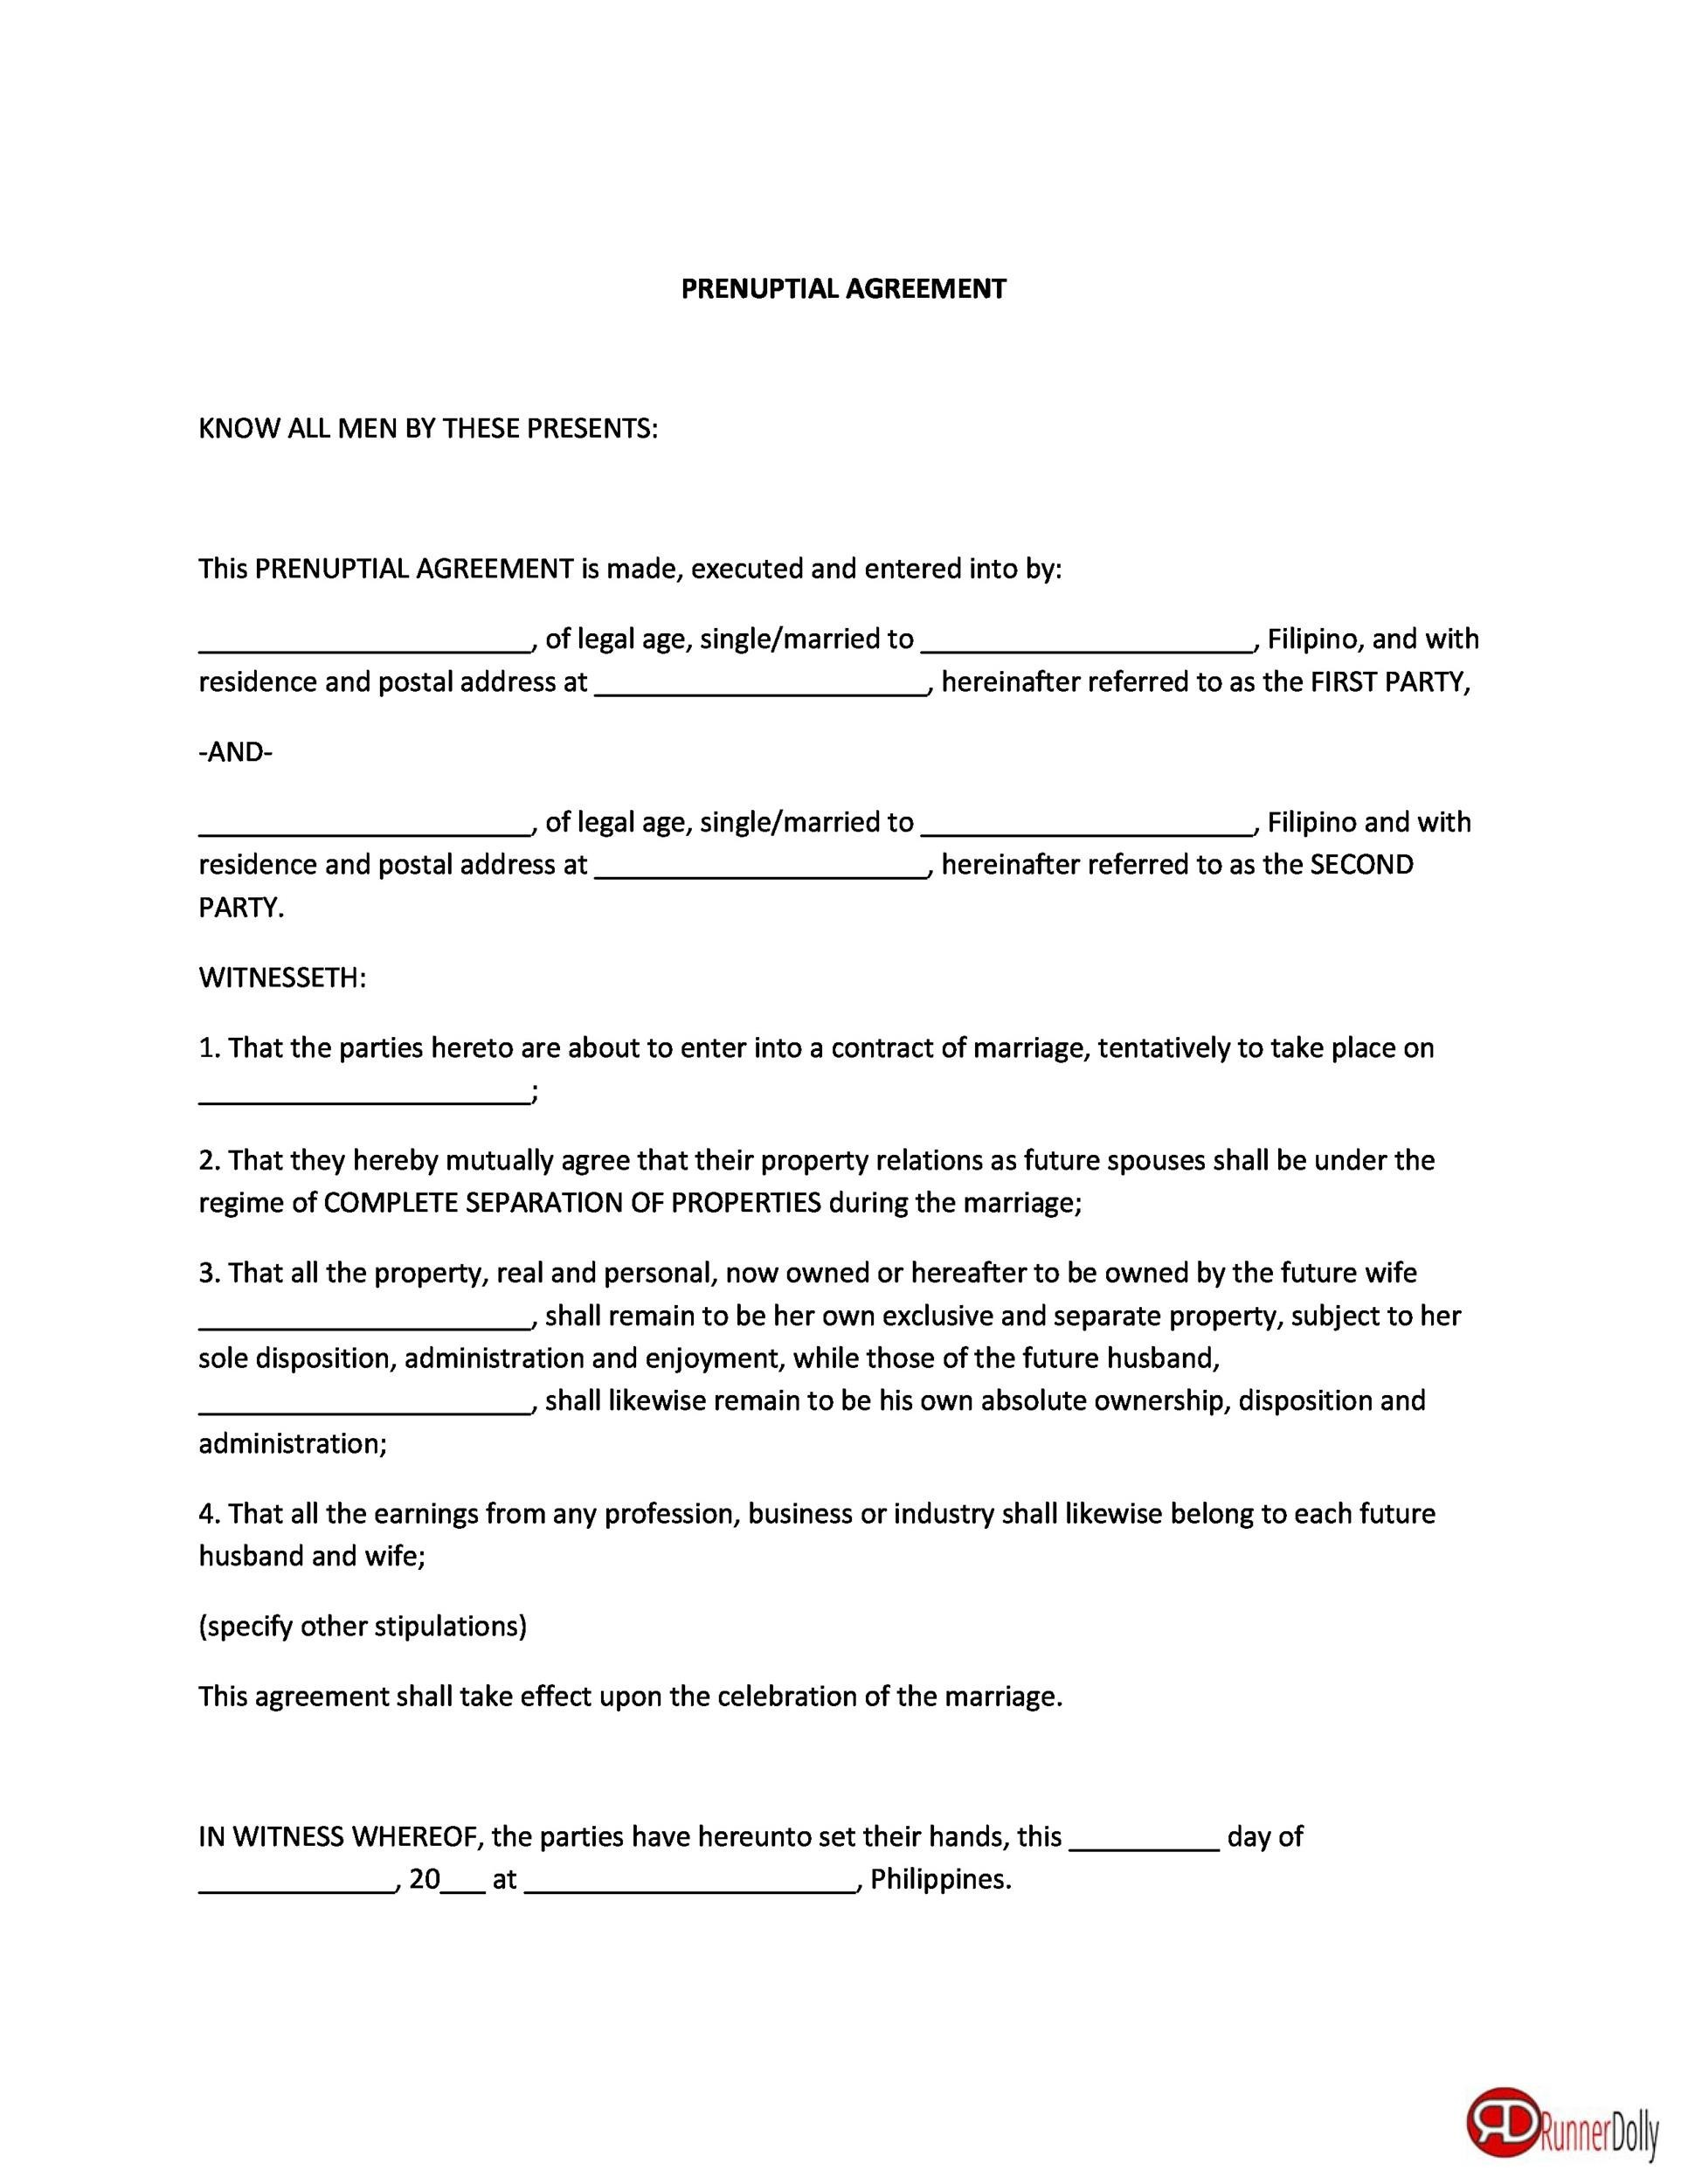 51 printable prenuptial agreement form templates fillable.